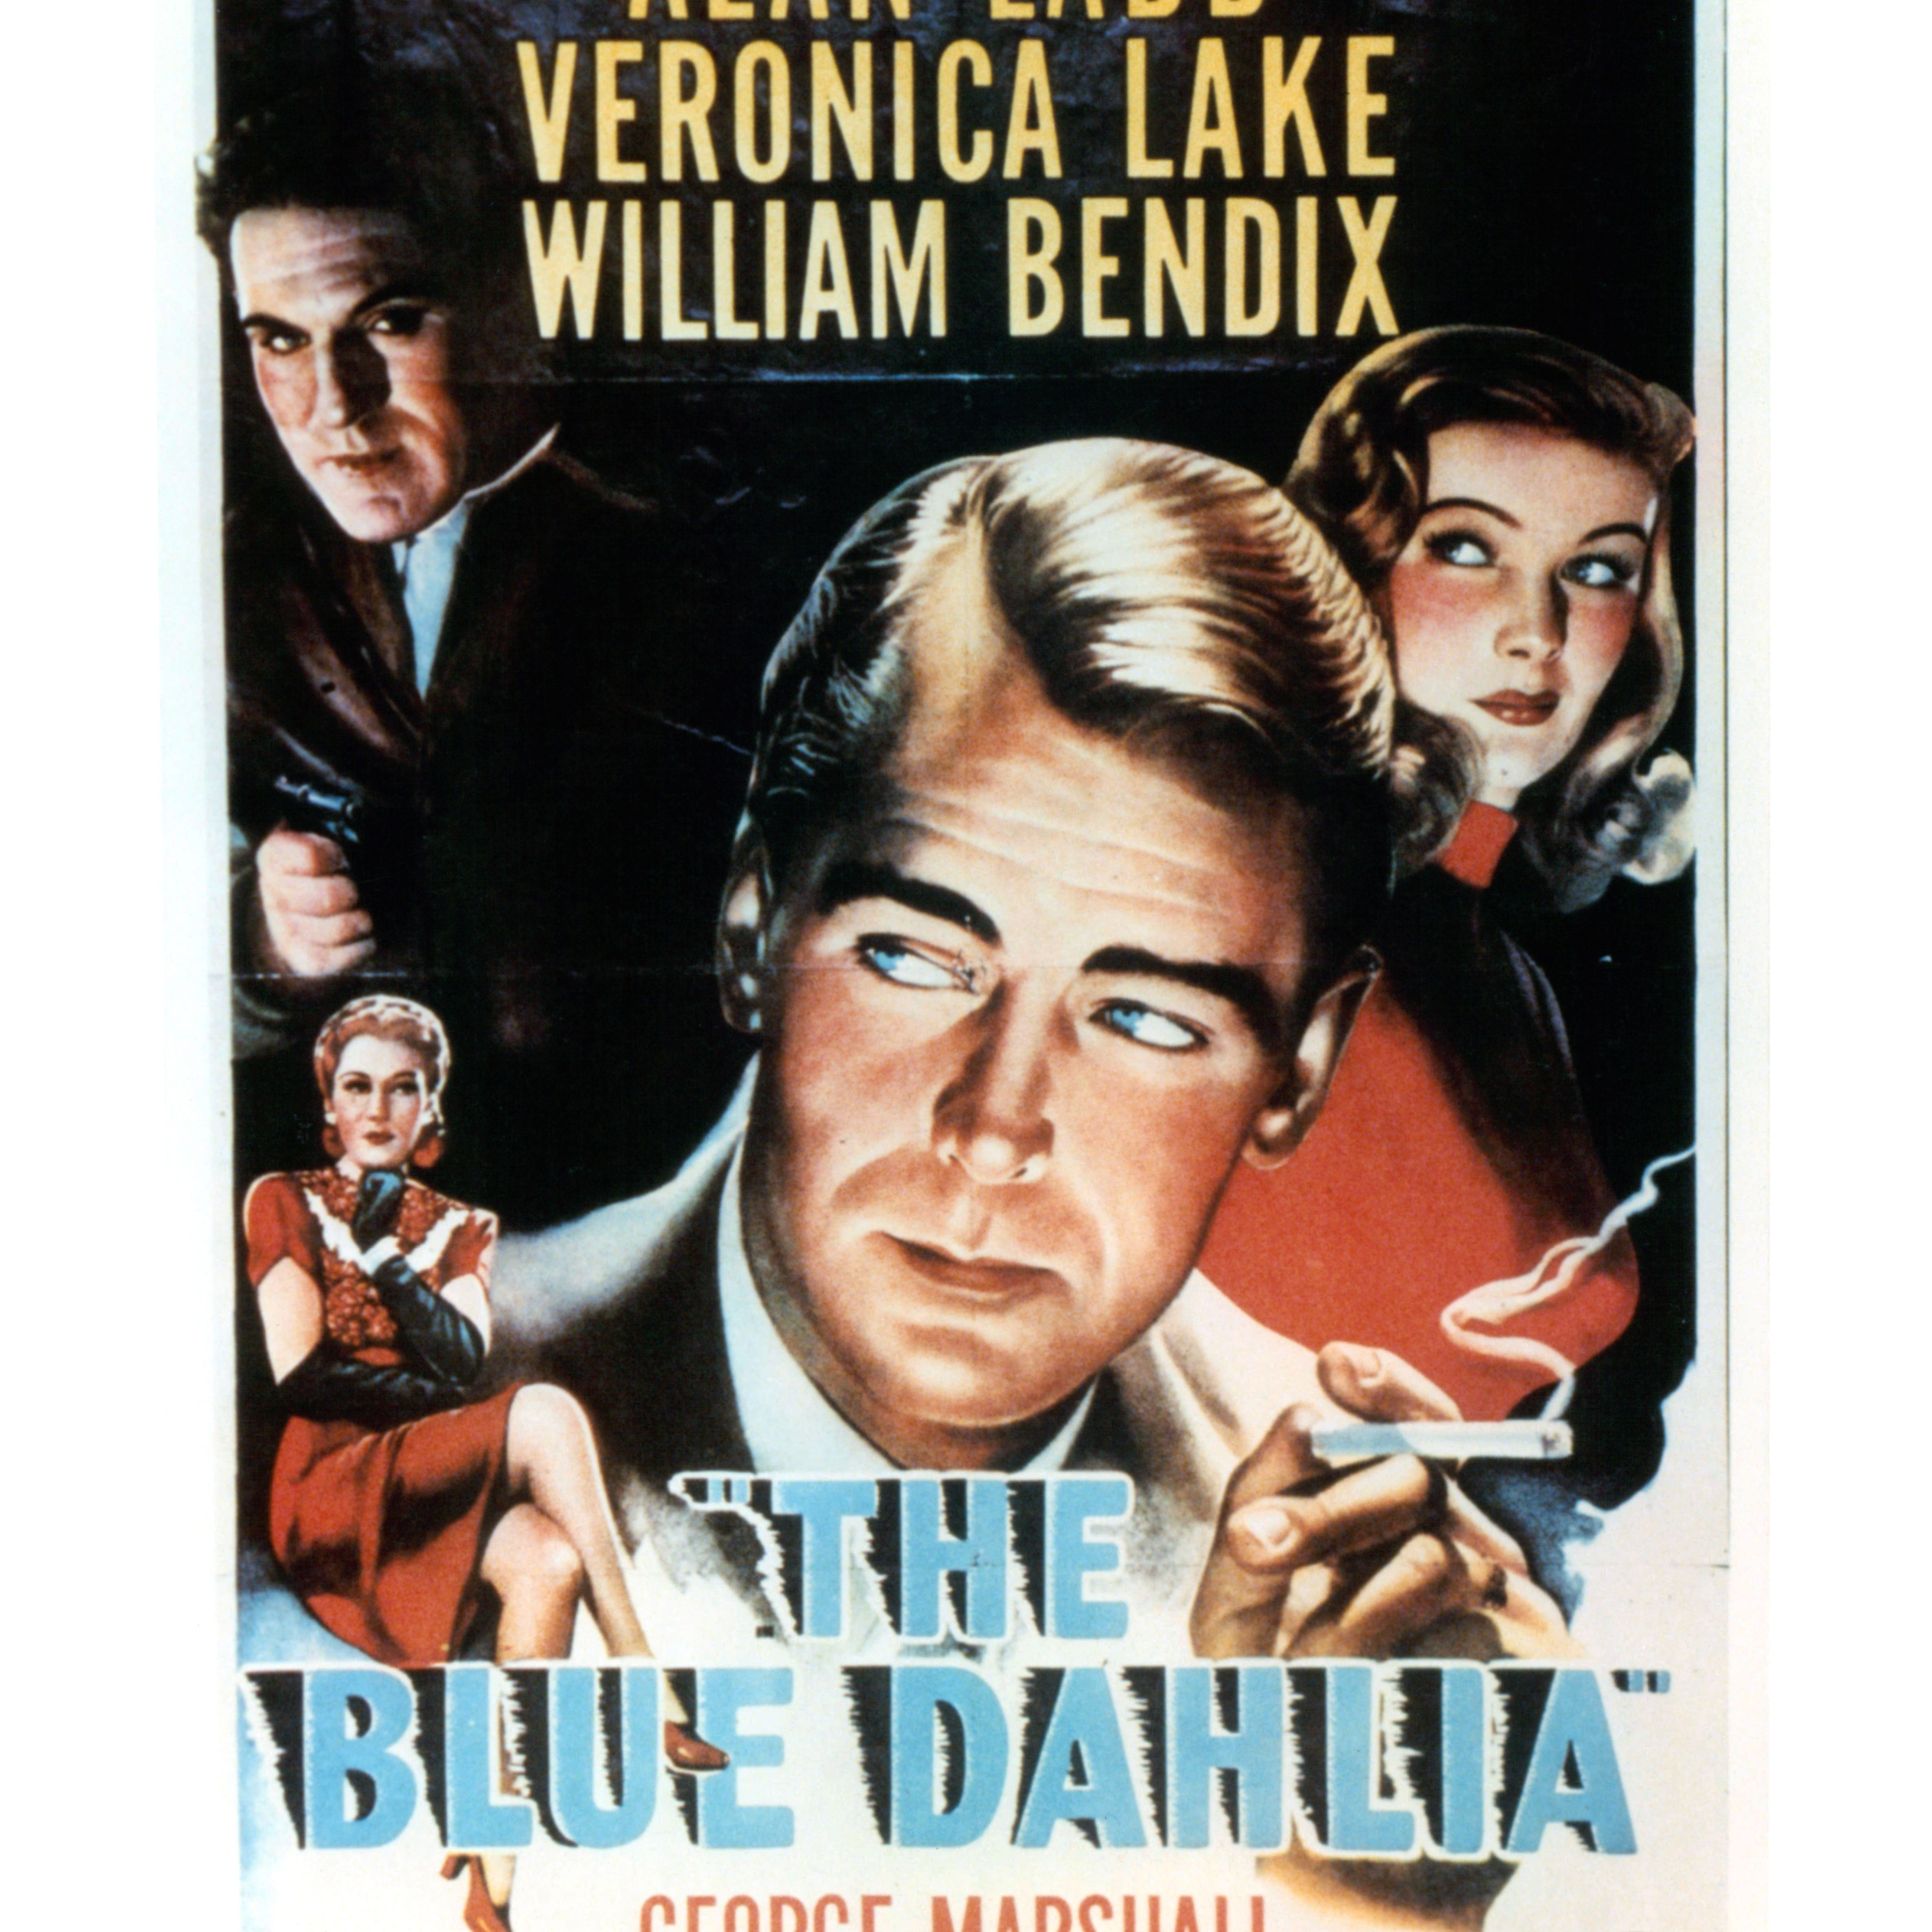 veronica lake and Alan Ladd In 'The Blue Dahlia'